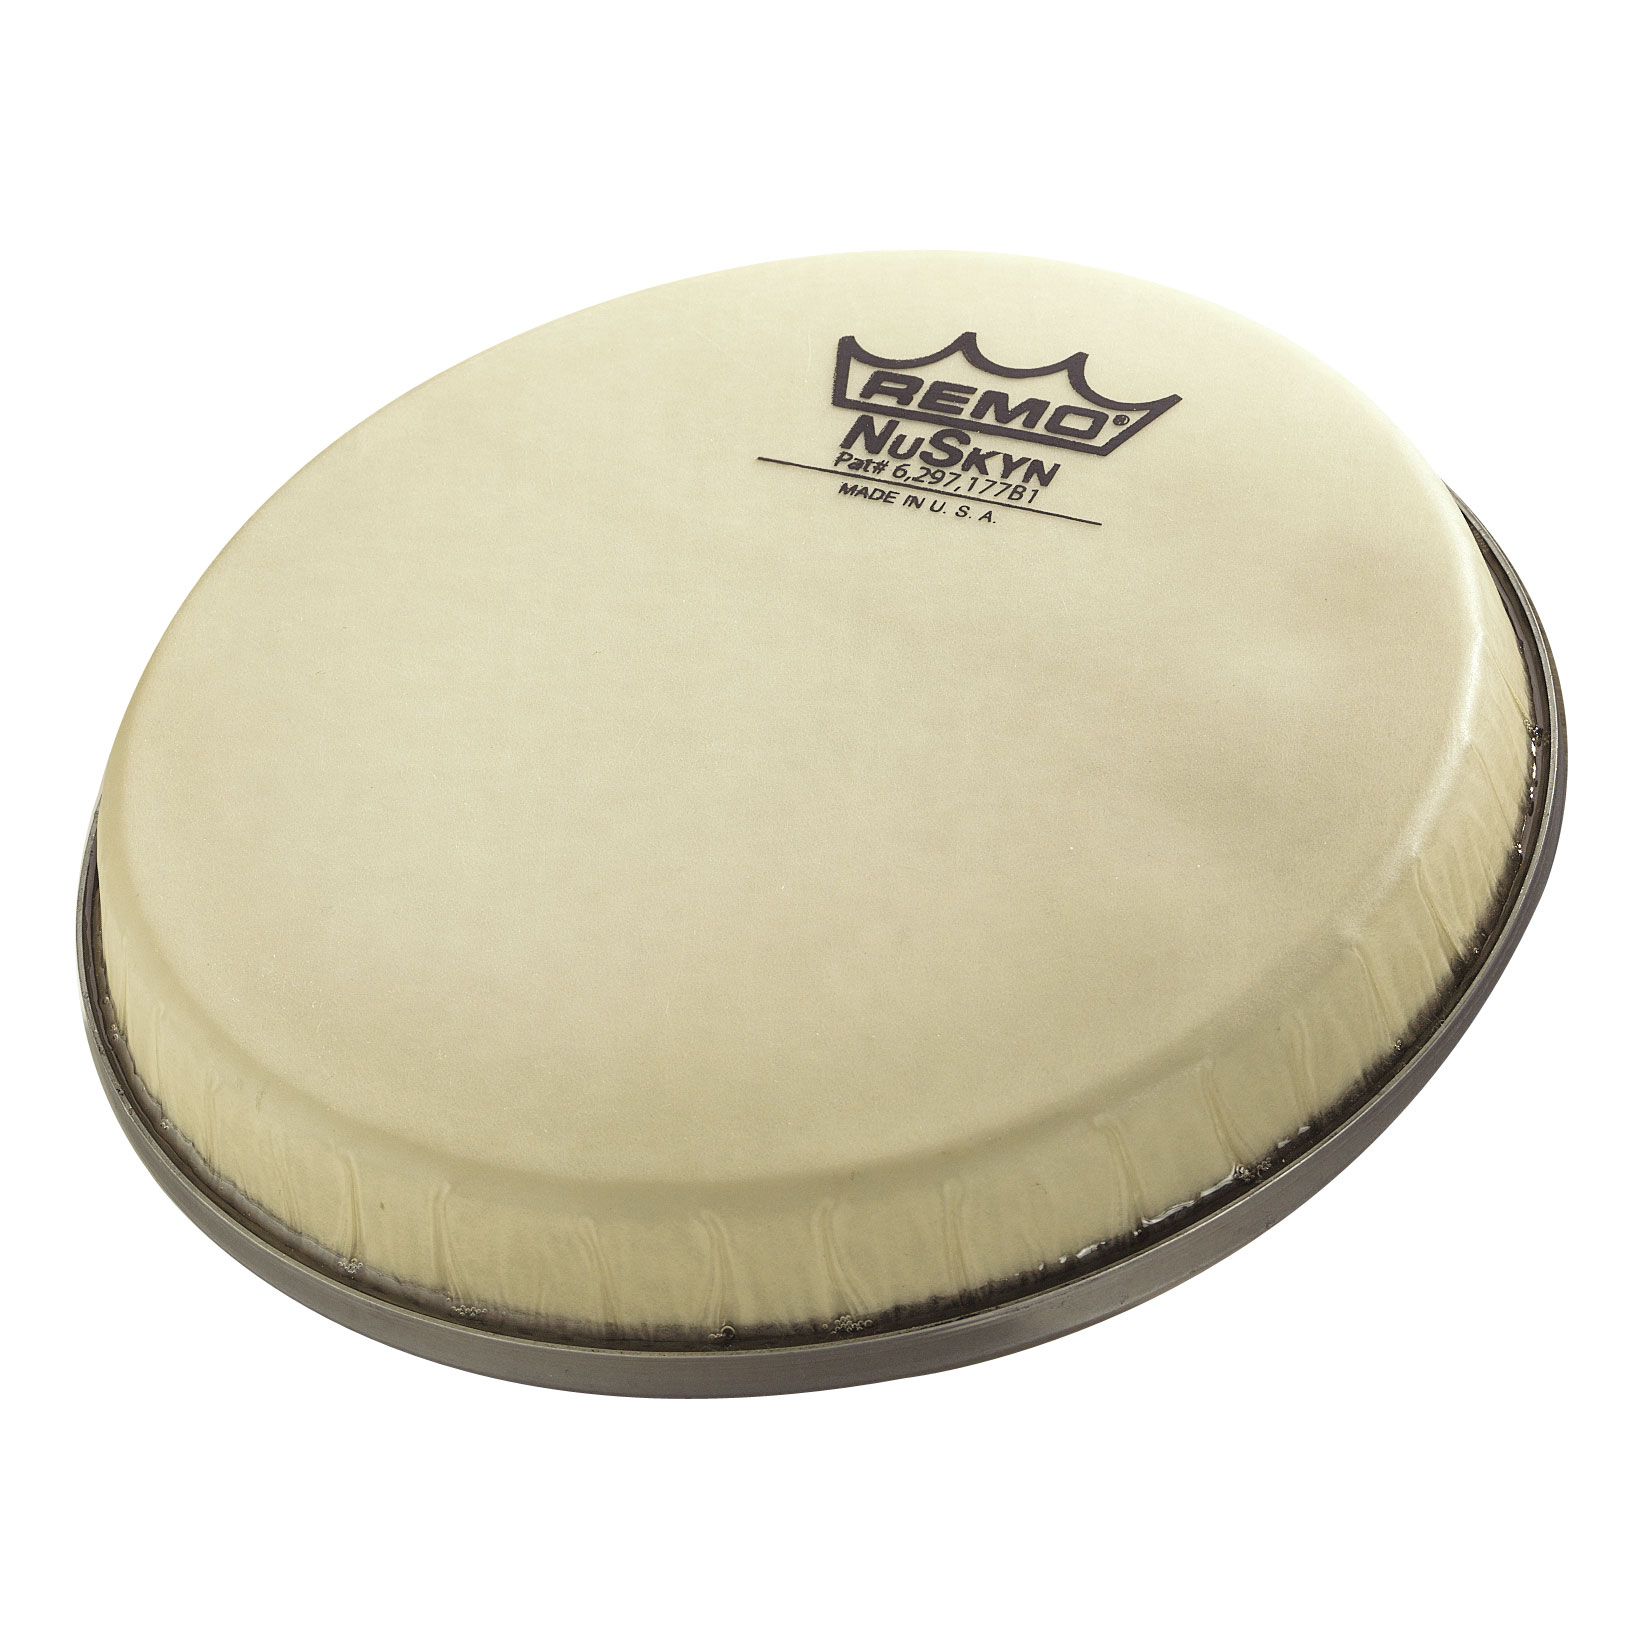 "Remo 7.15"" R-Series Nuskyn Bongo Drum Head"